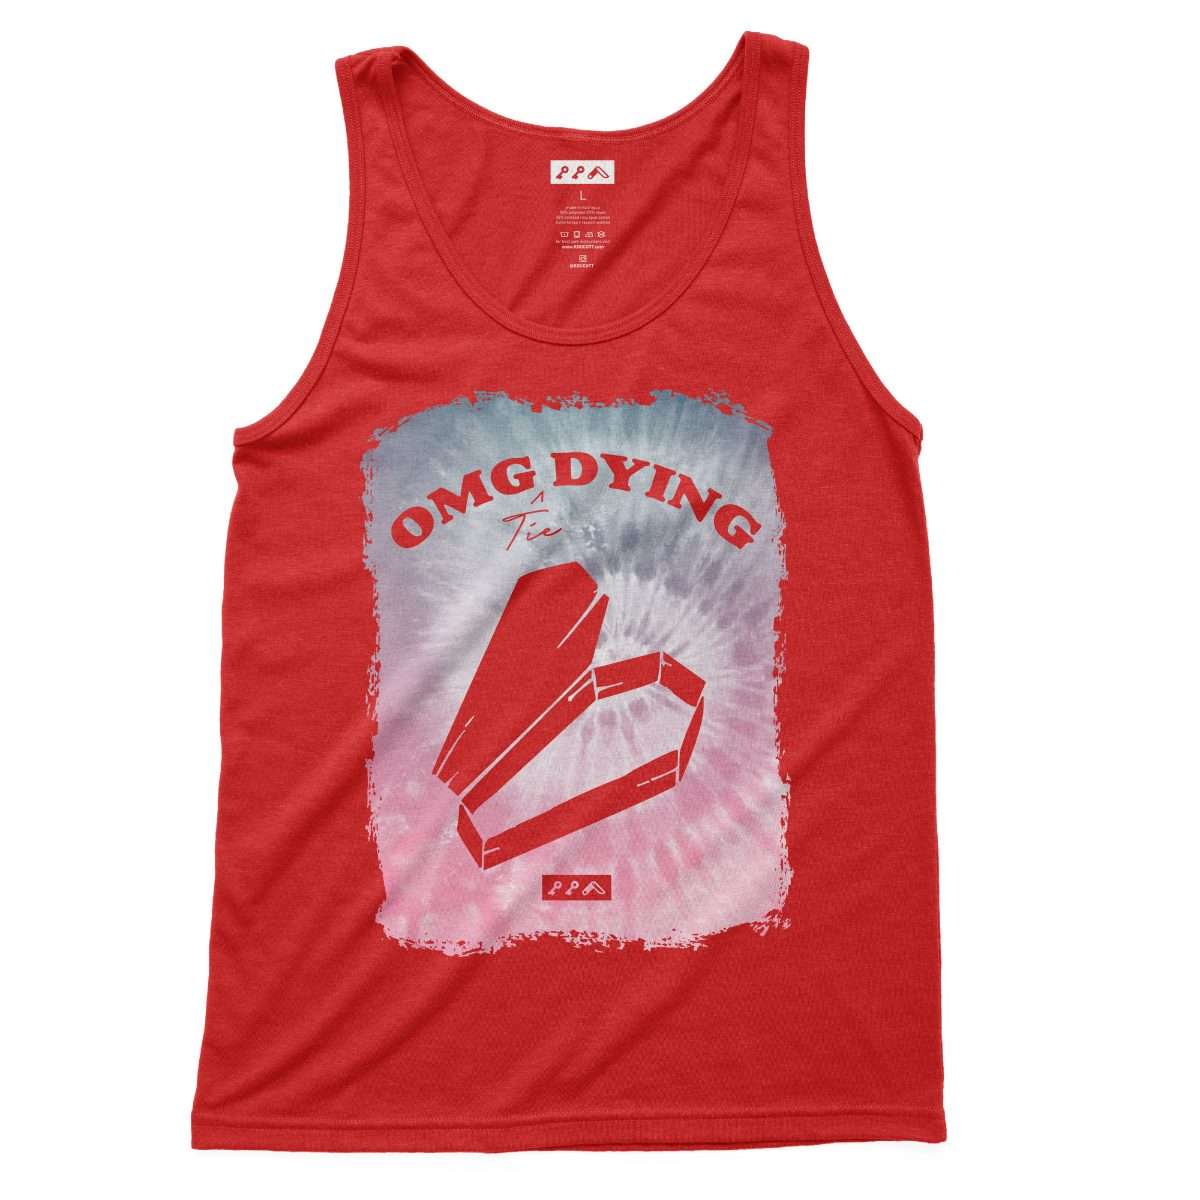 omg dying tie dye millenial quotes tank tops in red